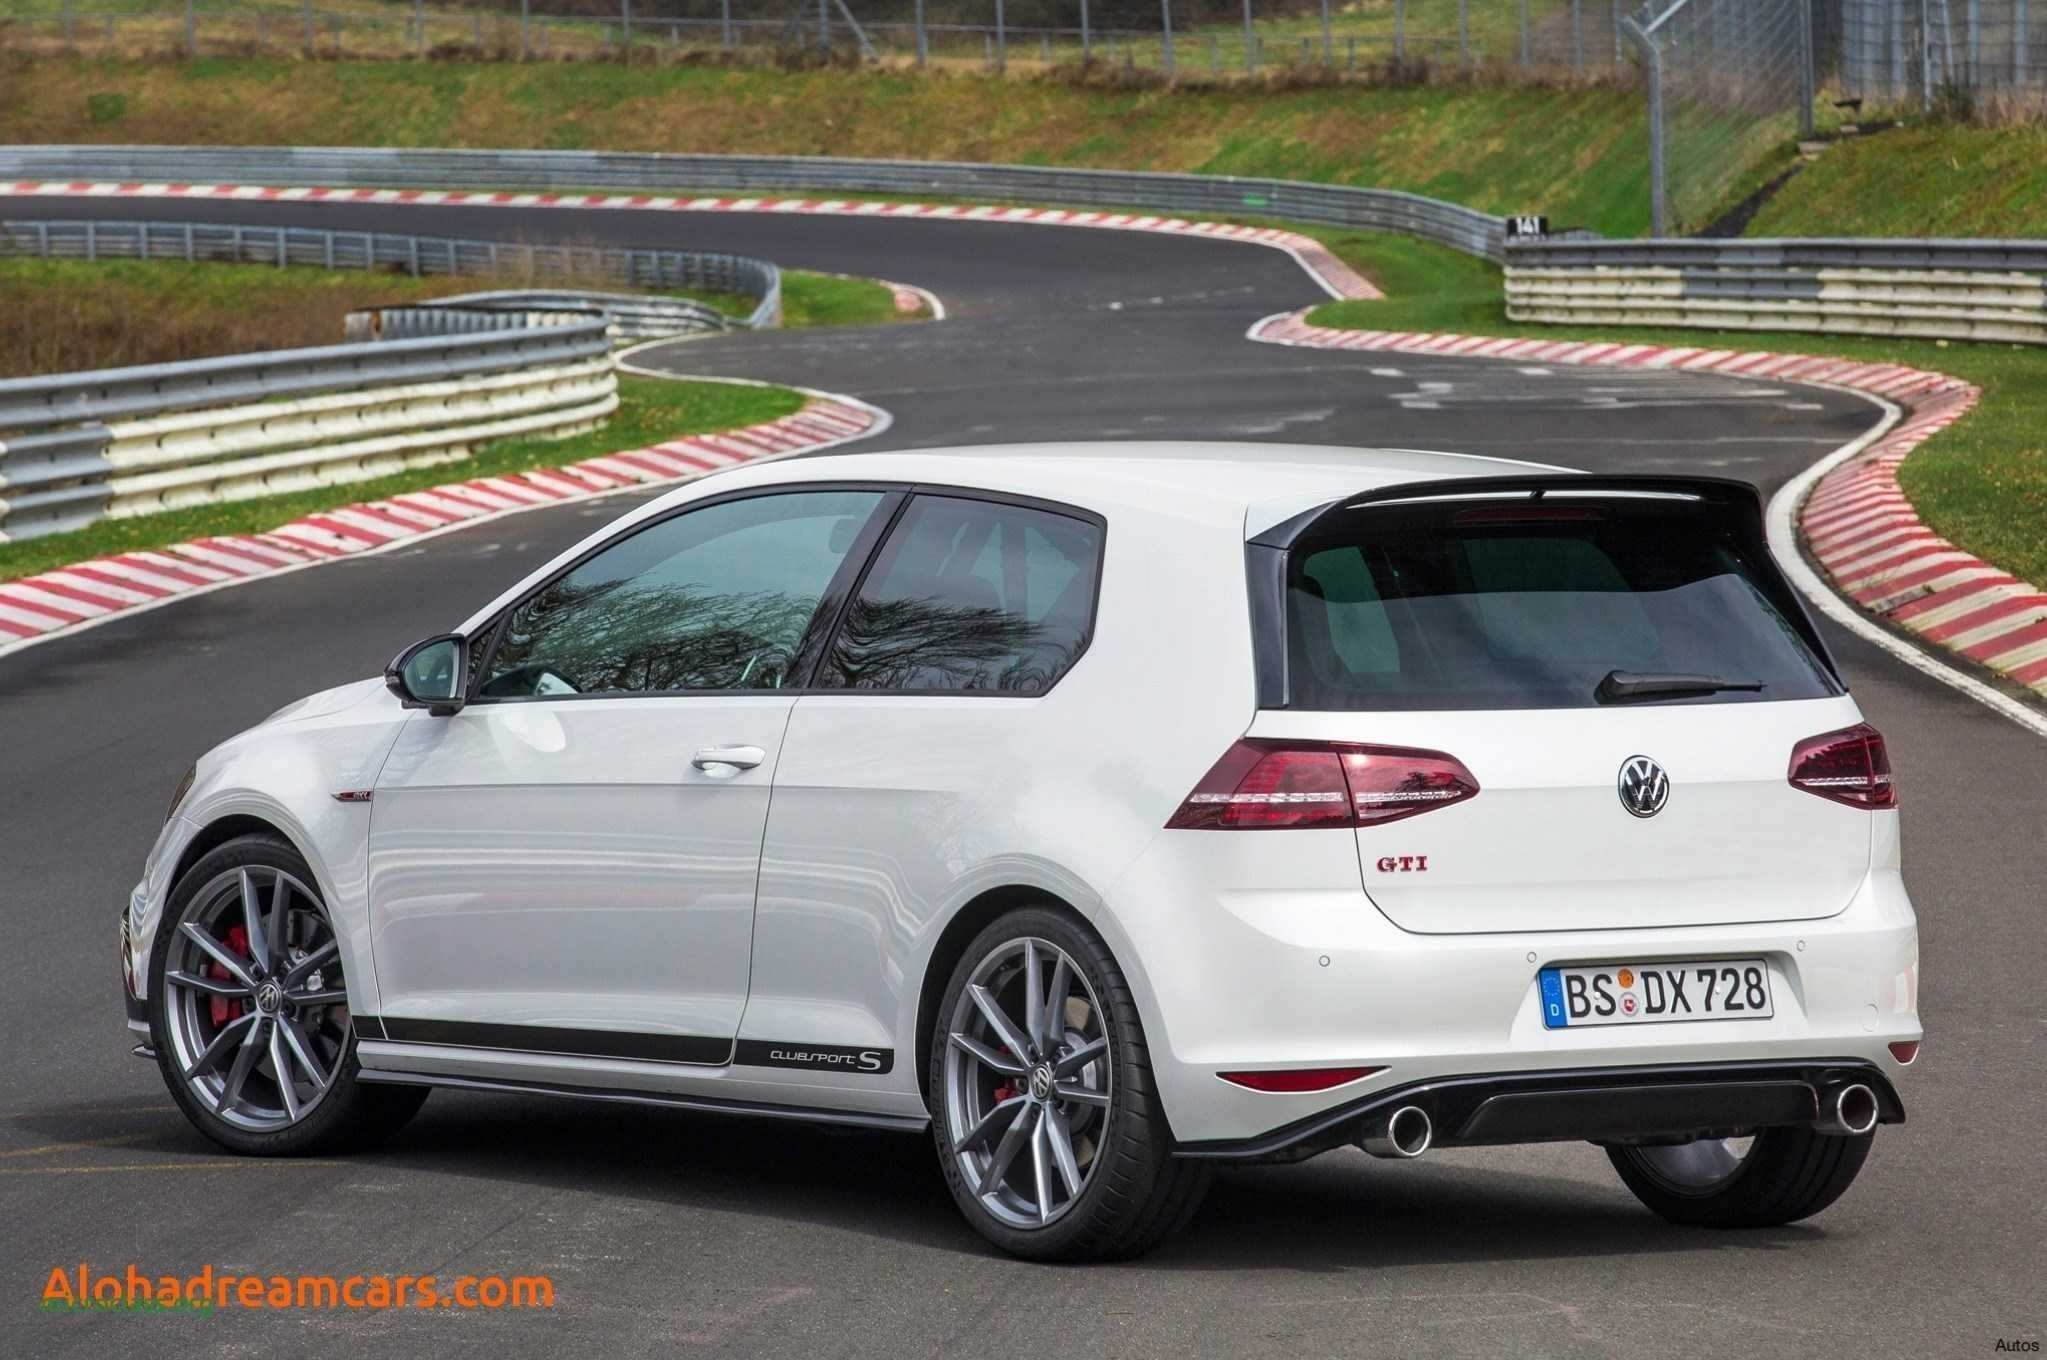 77 The 2019 VW Golf R USA Reviews